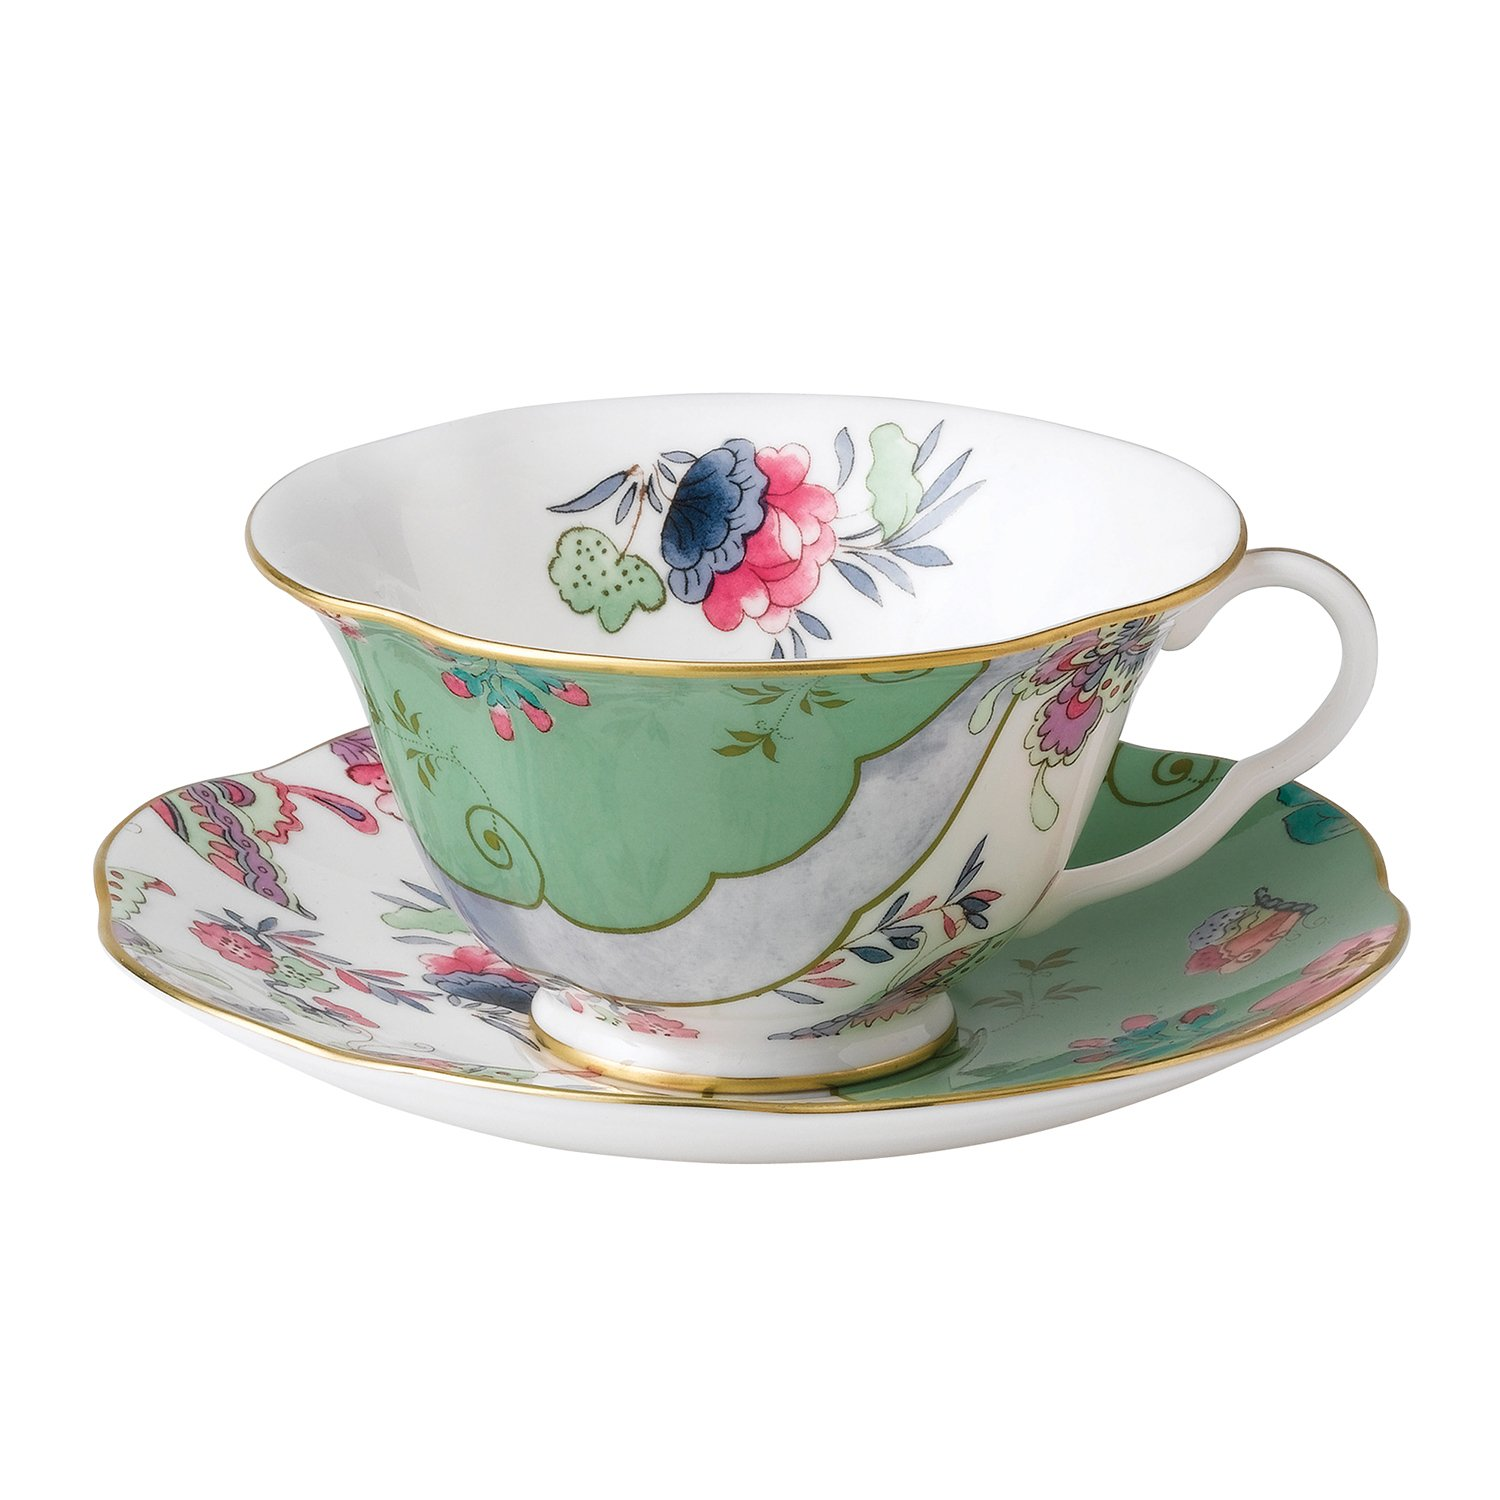 Wedgwood Harlequin Butterfly Bloom Teacup and Saucer Set, Blue Peony 5C10780054